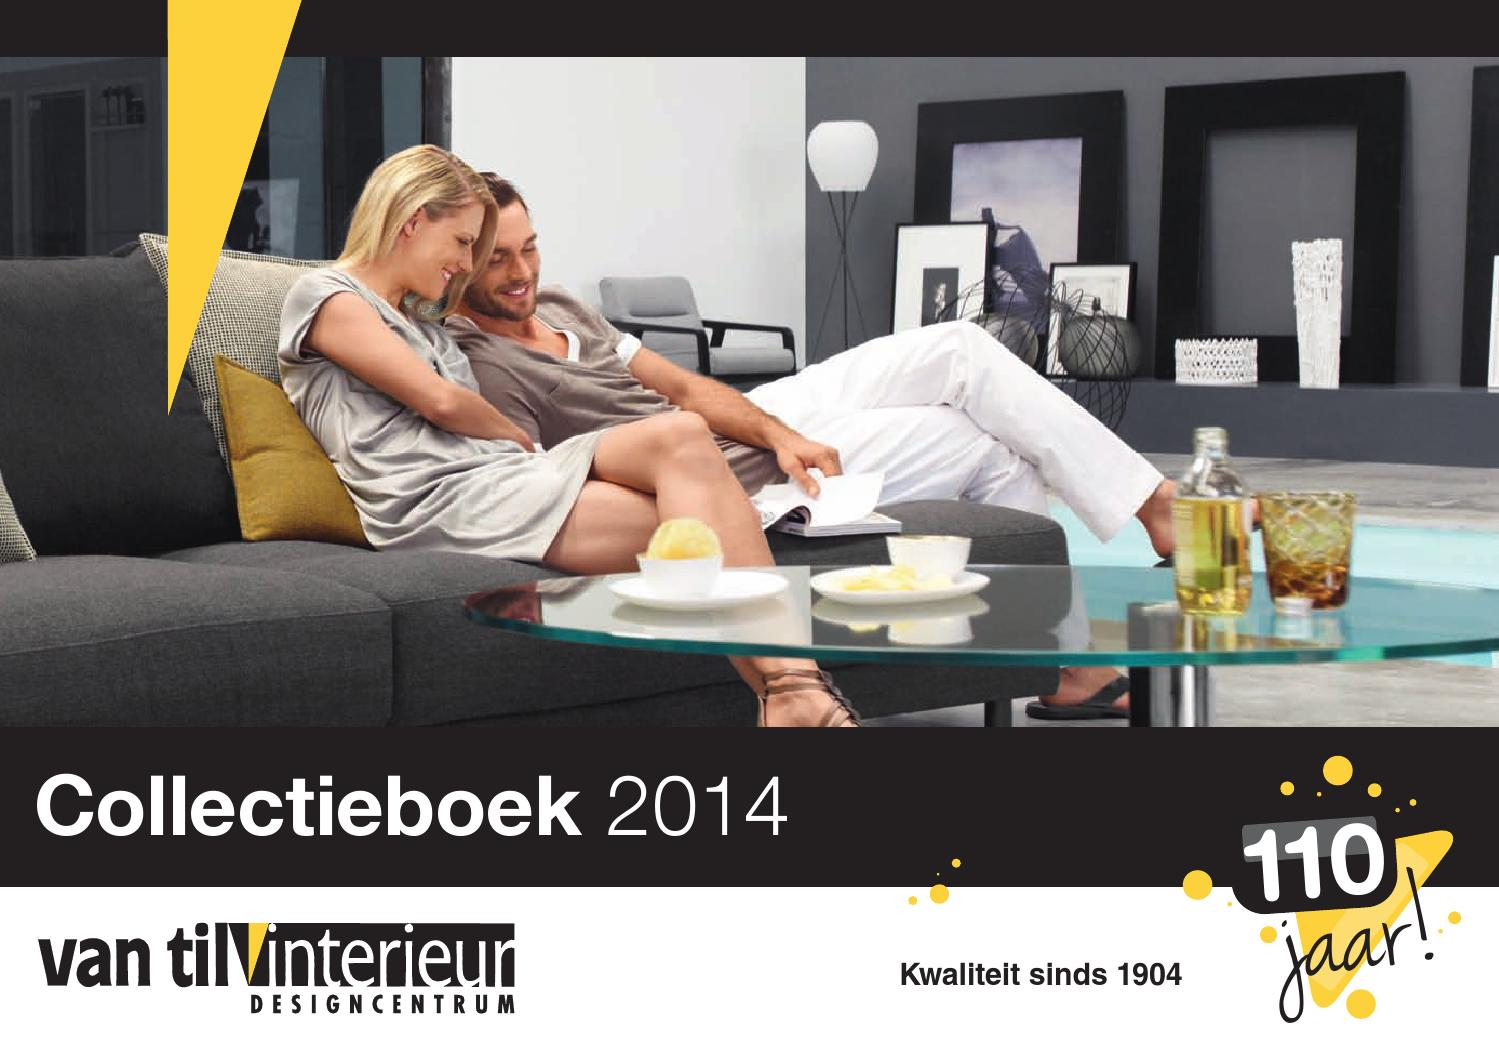 Collectieboek 2014 Van Til Interieur by Van Til Interieur - issuu